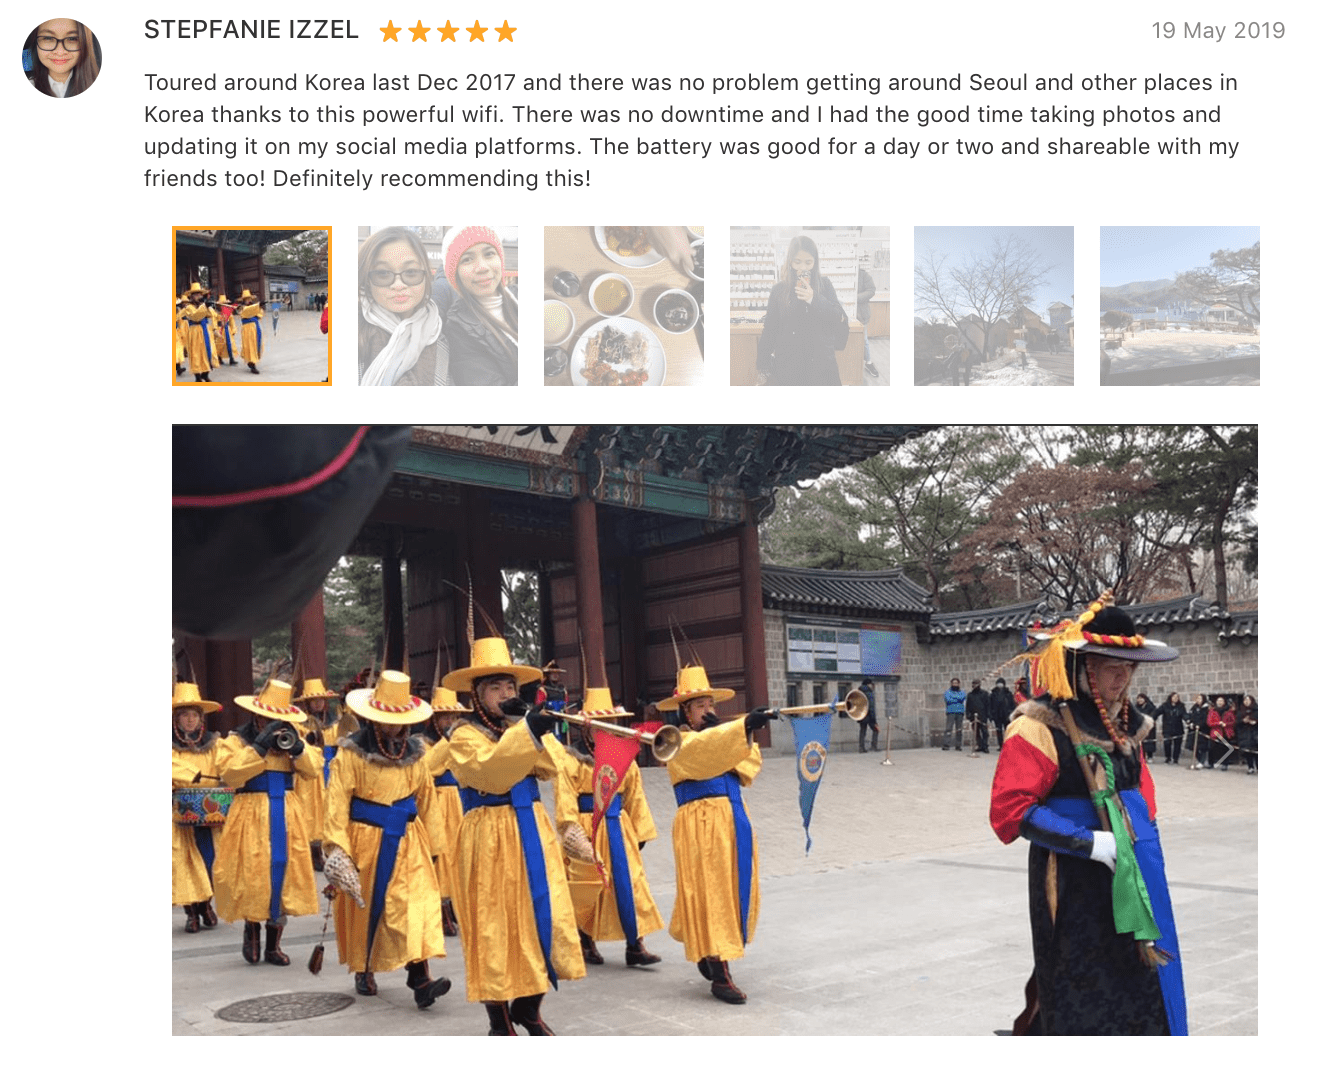 'Toured around Korea last Dec 2017 and there was no problem getting around Seoul…thanks to this powerful wifi. There was no downtime… The battery was good for a day or two and shareable with my friends too! Definitely recommending this!' - 4G KT Olleh South Korea Pocket Wifi Review: Klook